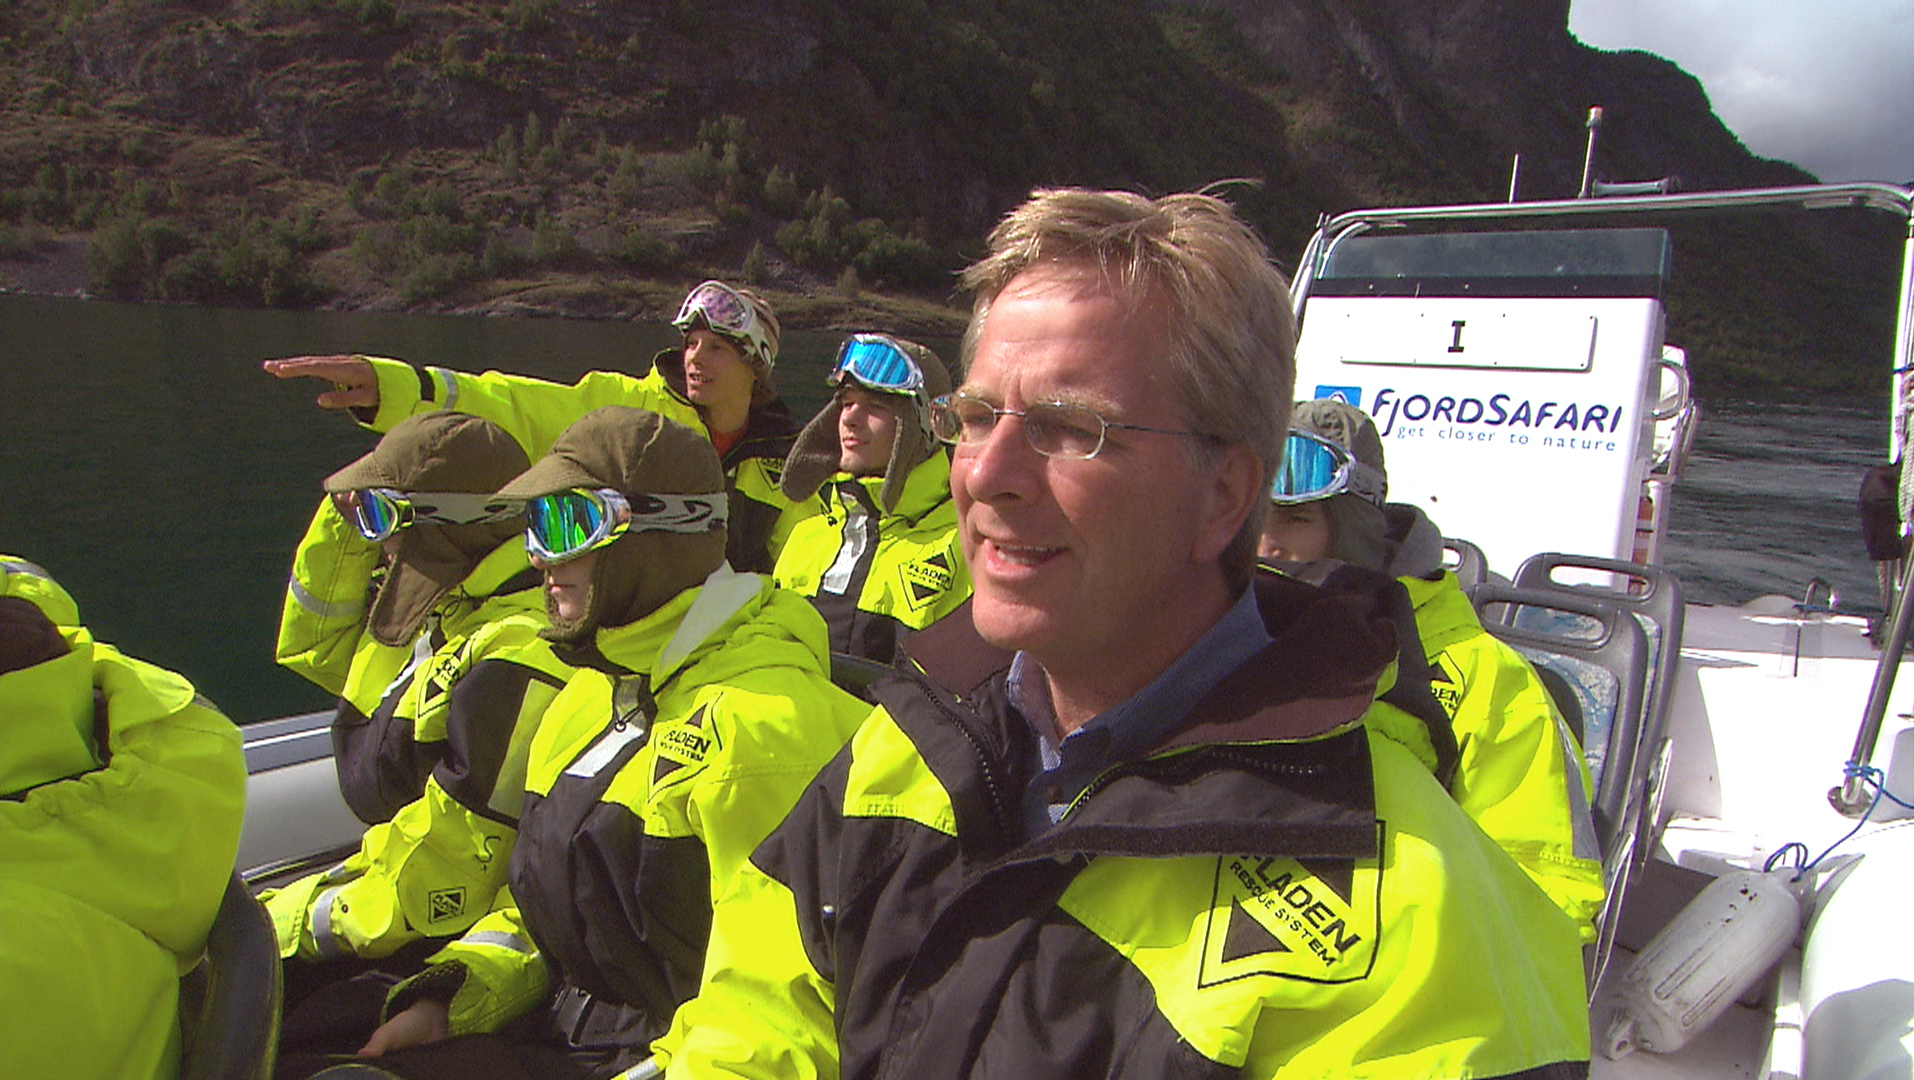 Rick Steves among the fjords